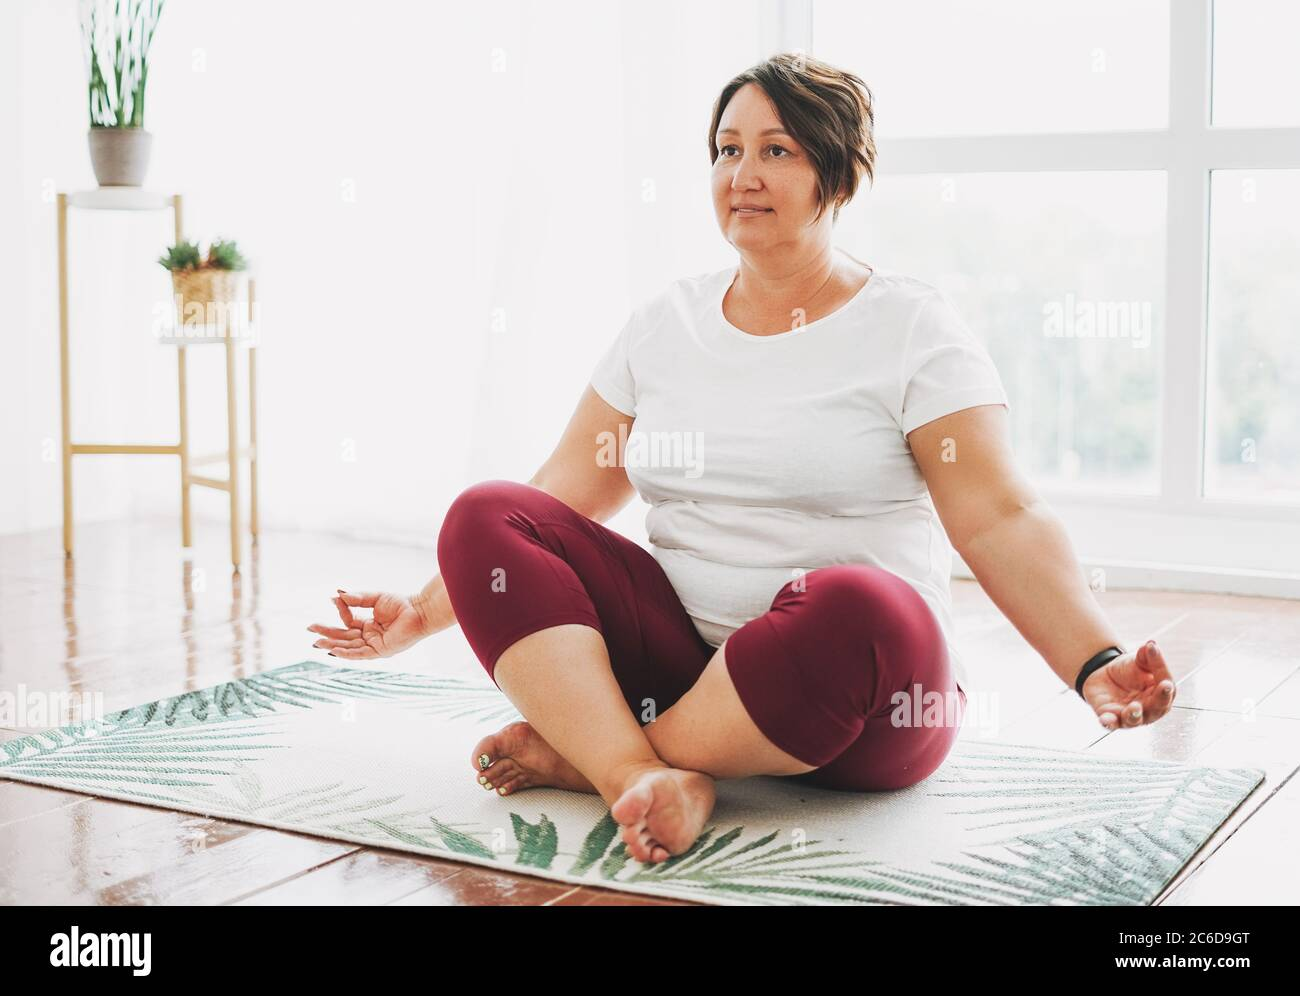 Adult charming brunette woman plus size body positive practice yoga at bright studio Stock Photo